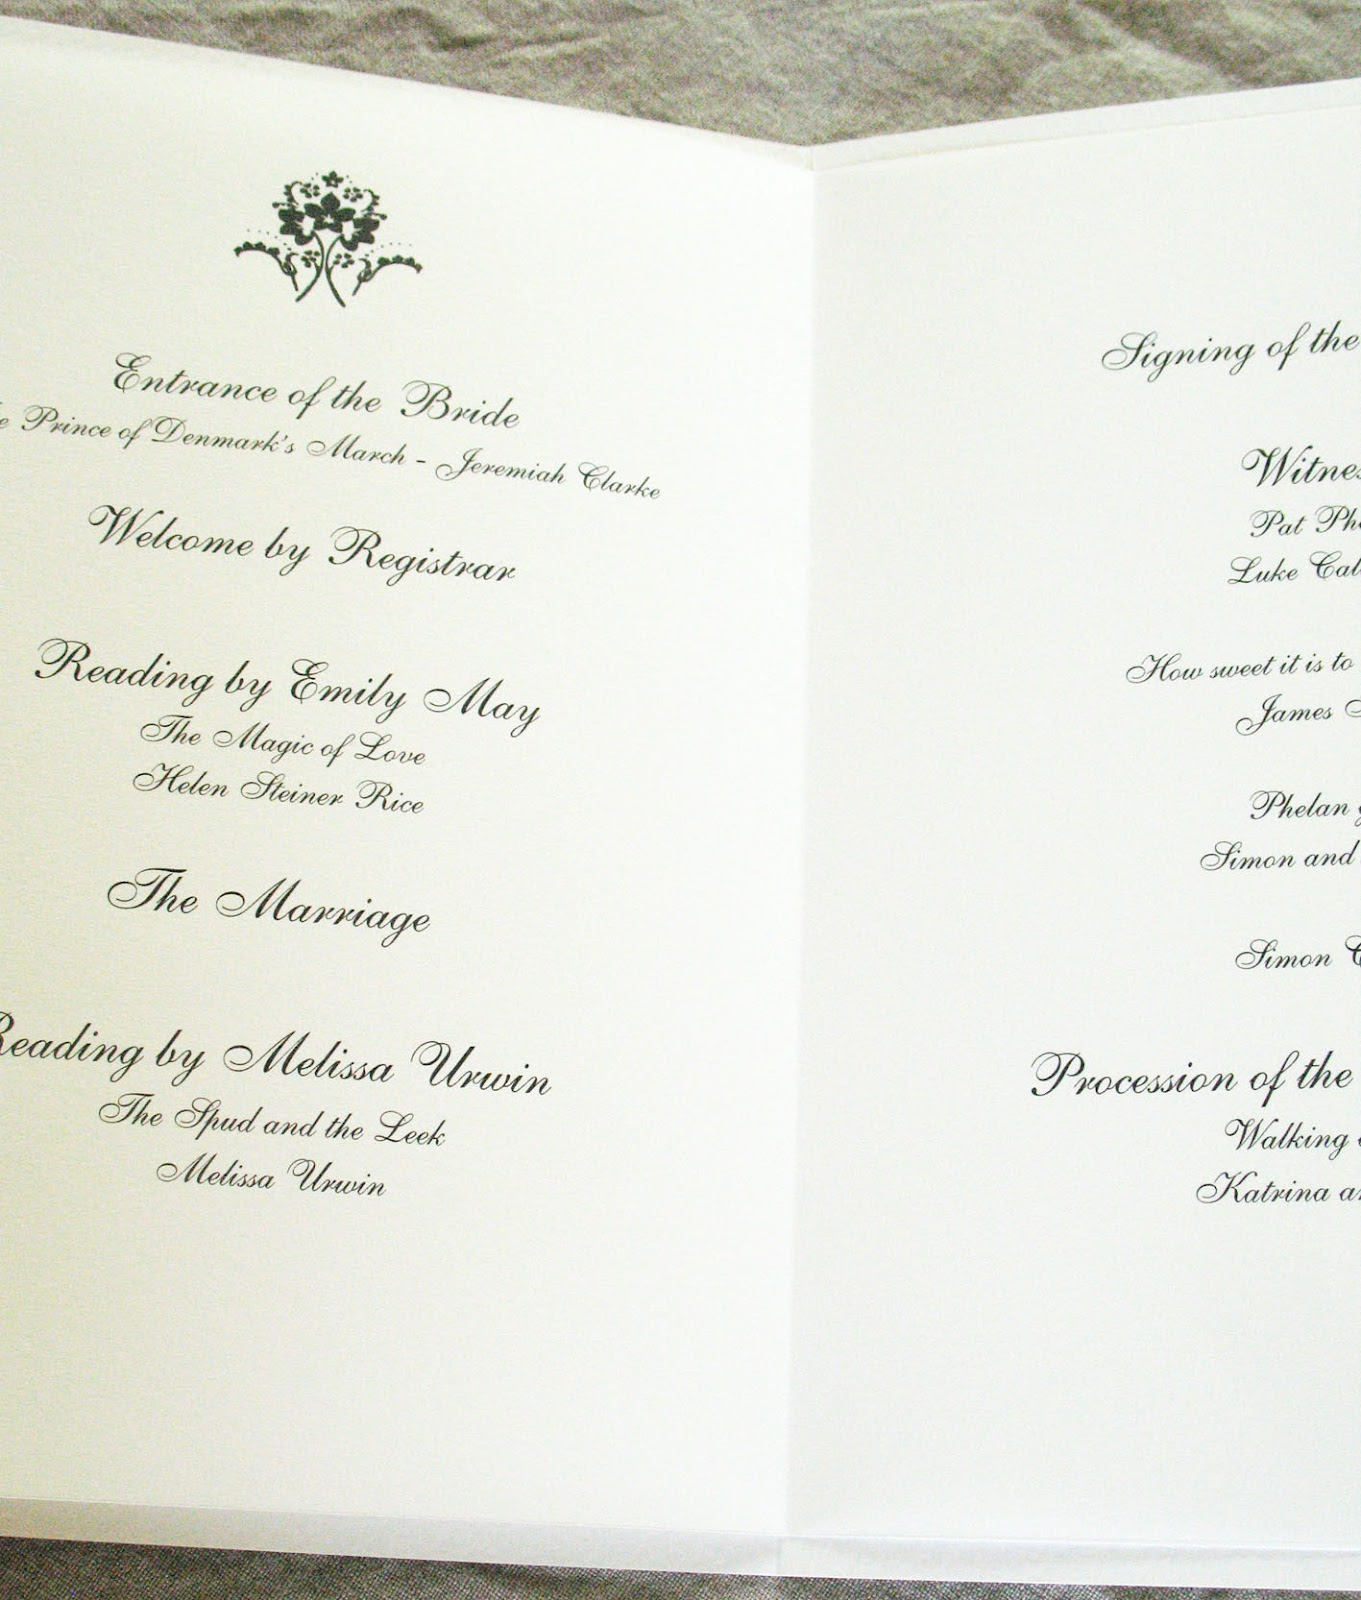 church wedding ceremony order of service template